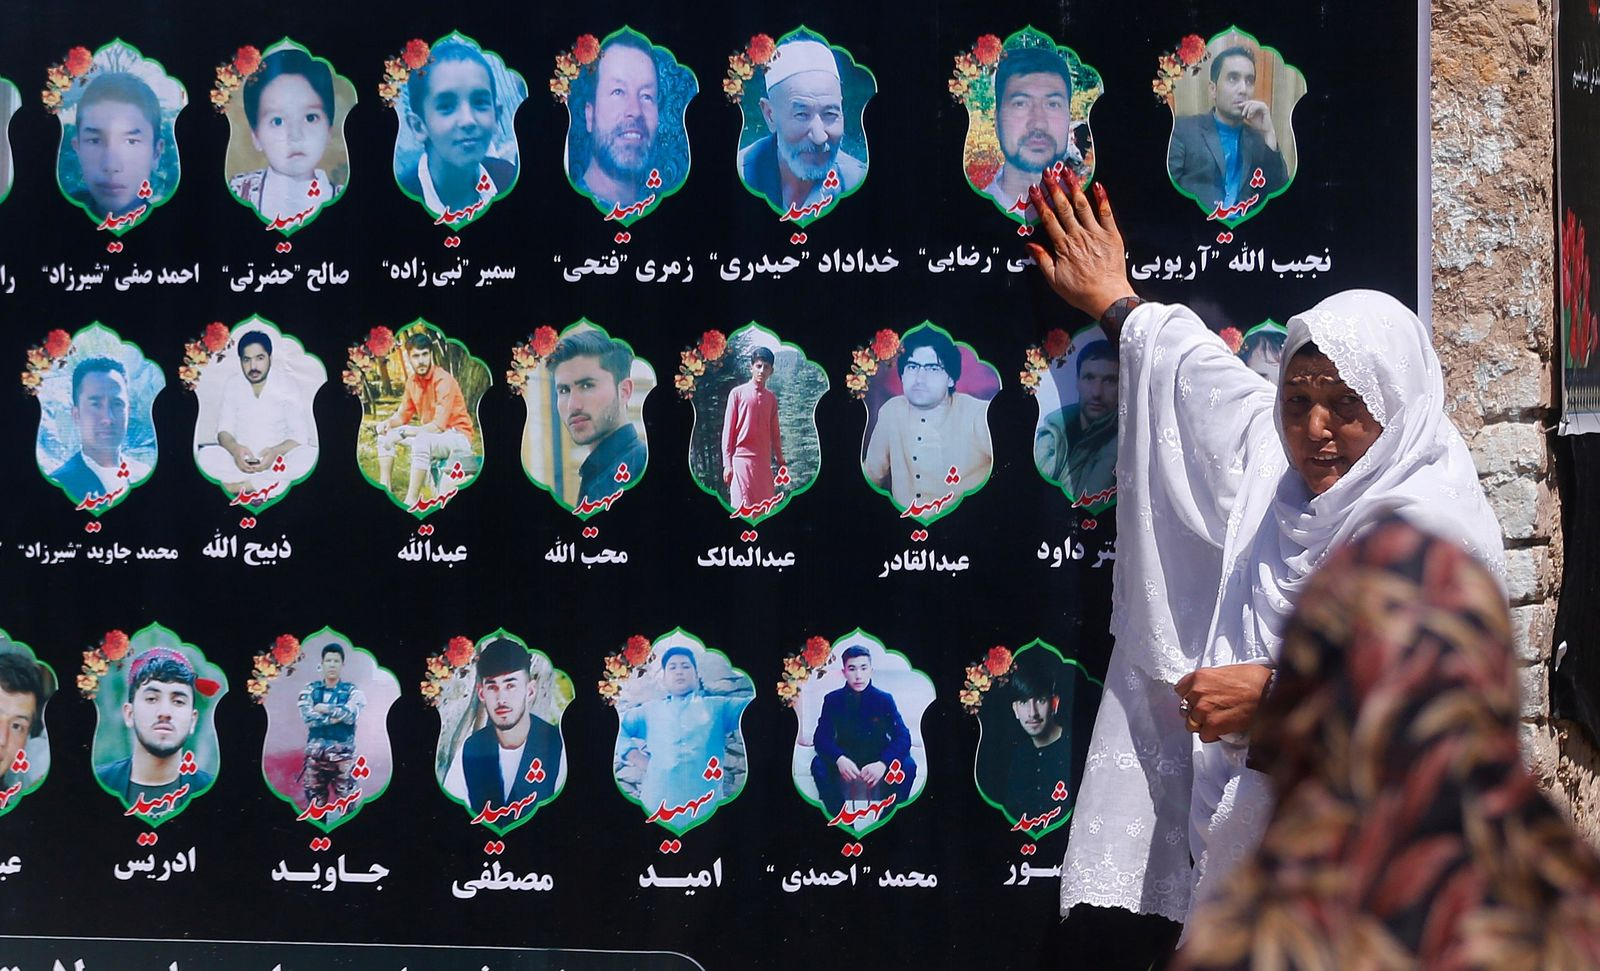 An Afghan woman cries as she touches a banner displaying photographs of victims of the Dubai City wedding hall bombing during a memorial service in Kabul, Afghanistan, Tuesday, Aug. 20, 2019. The deadly bombing at a wedding in Afghanistan's capital late last Saturday that killed dozens of people was a stark reminder that the war-weary country faces daily threats not only from the long-established Taliban but also from a brutal local affiliate of the Islamic State group, which claimed responsibility for the attack. (AP Photo/Rafiq Maqbool)